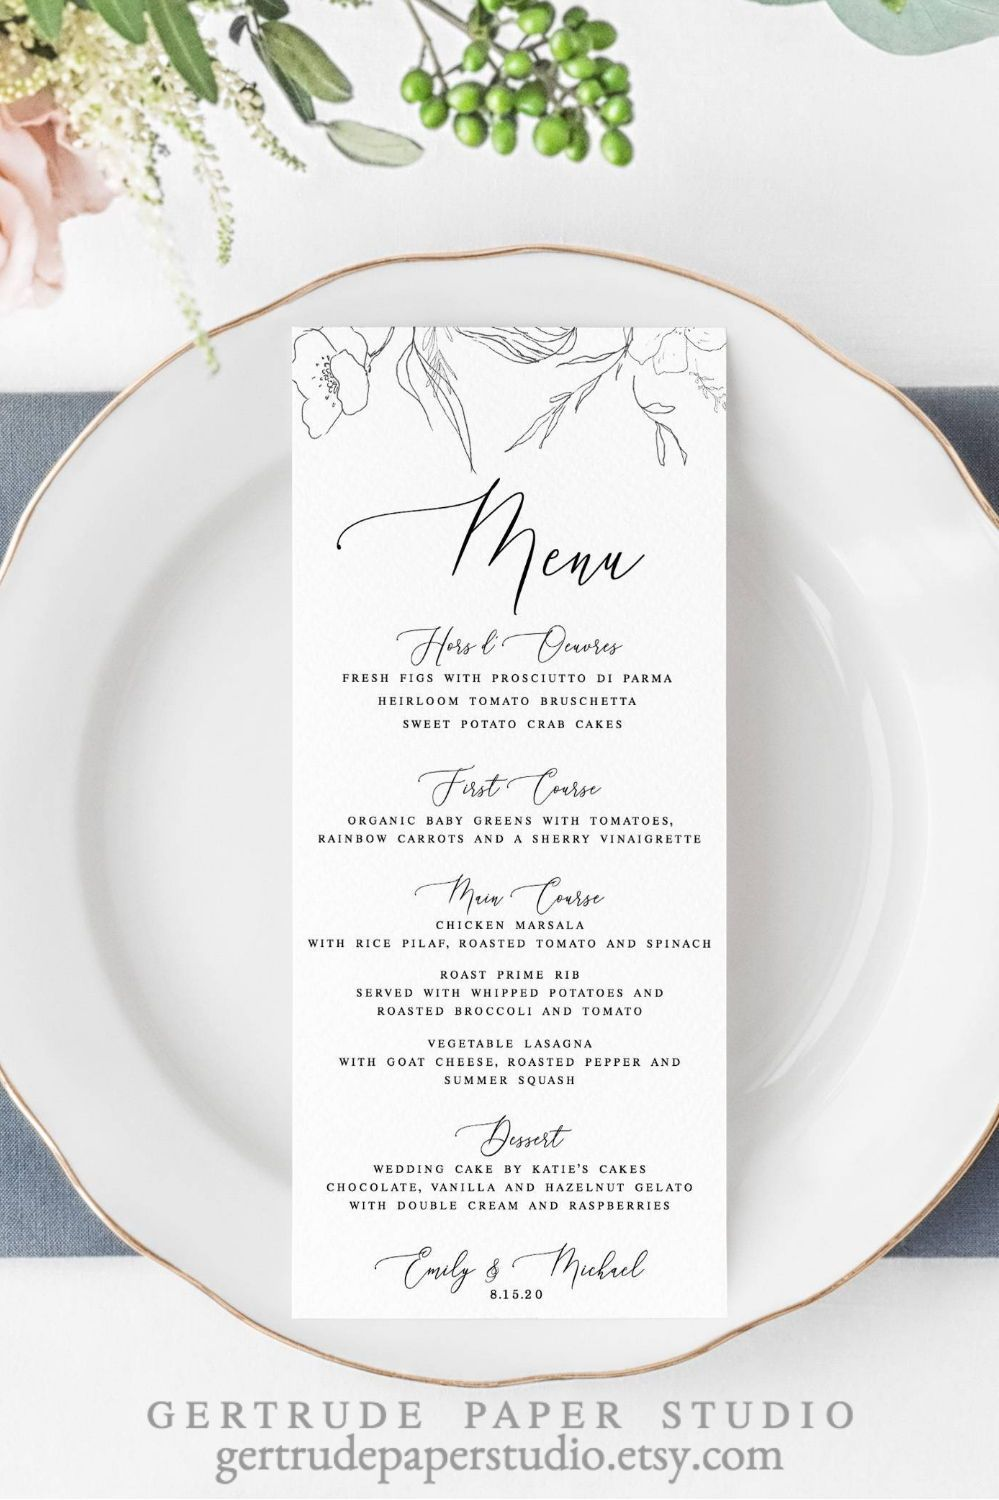 Fine Art Wedding Menu Digital Download Vintage Wedding Etsy In 2020 Elegant Wedding Menu Wedding Menu Template Bridal Shower Menu